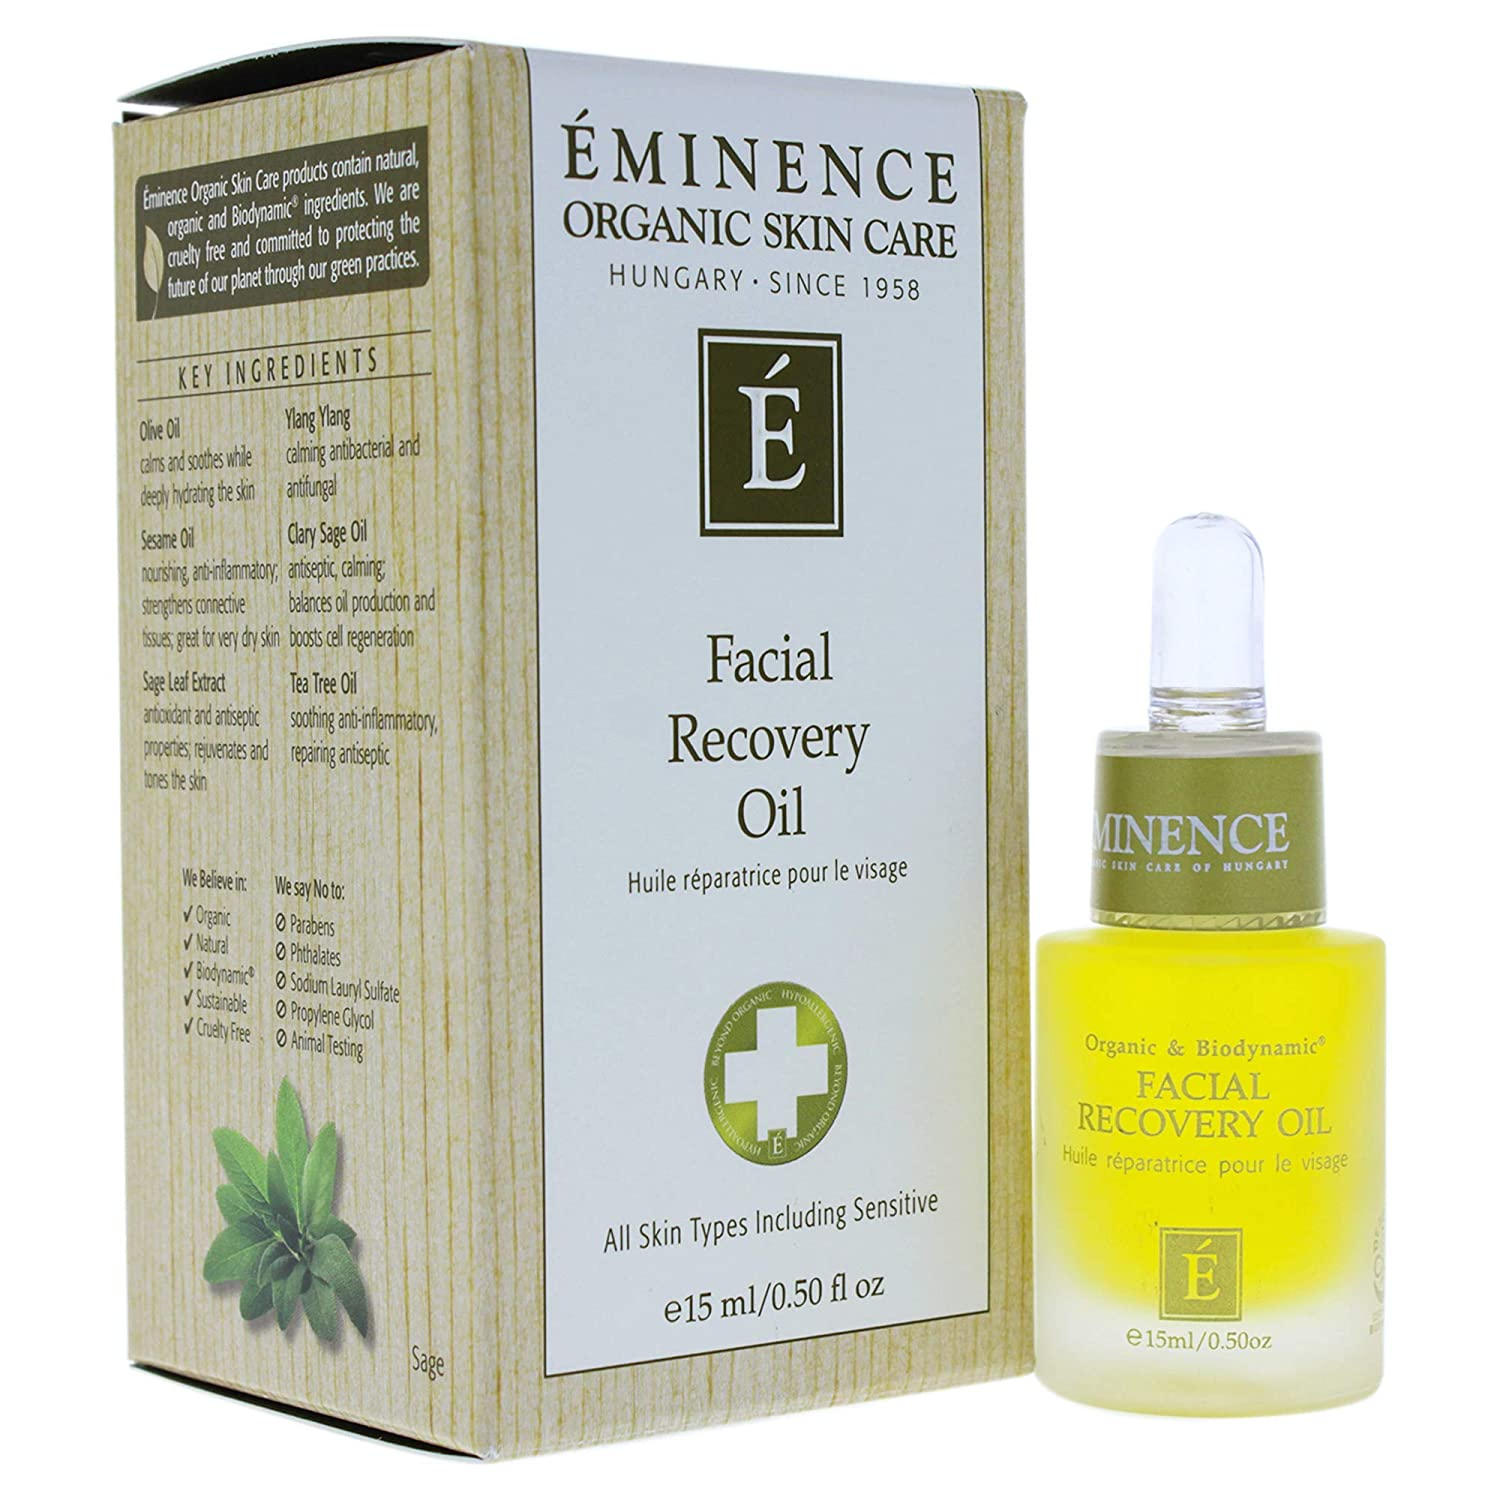 Facial Recovery Oil, 0.5 oz